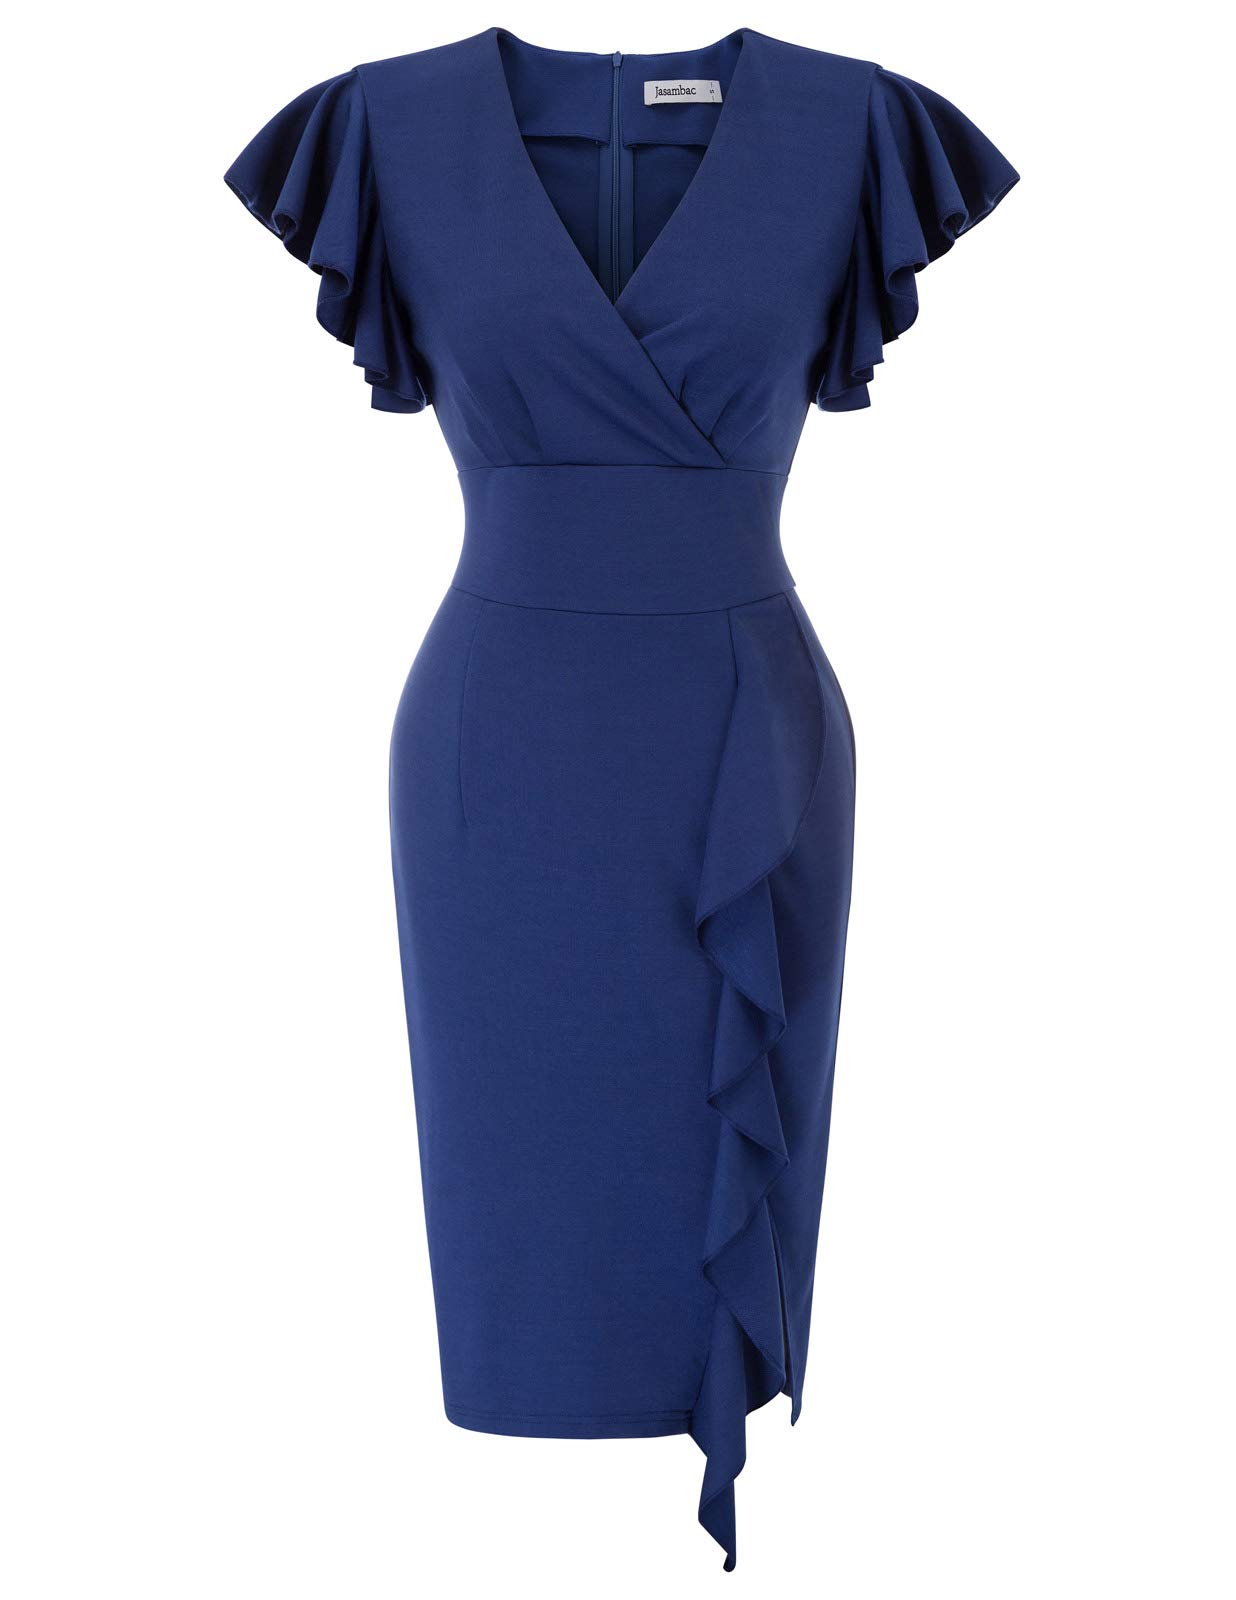 Available at Amazon: JASAMBAC Women's Deep-V Neck Ruffle Sleeves Cocktail Party Slit Pencil Dress